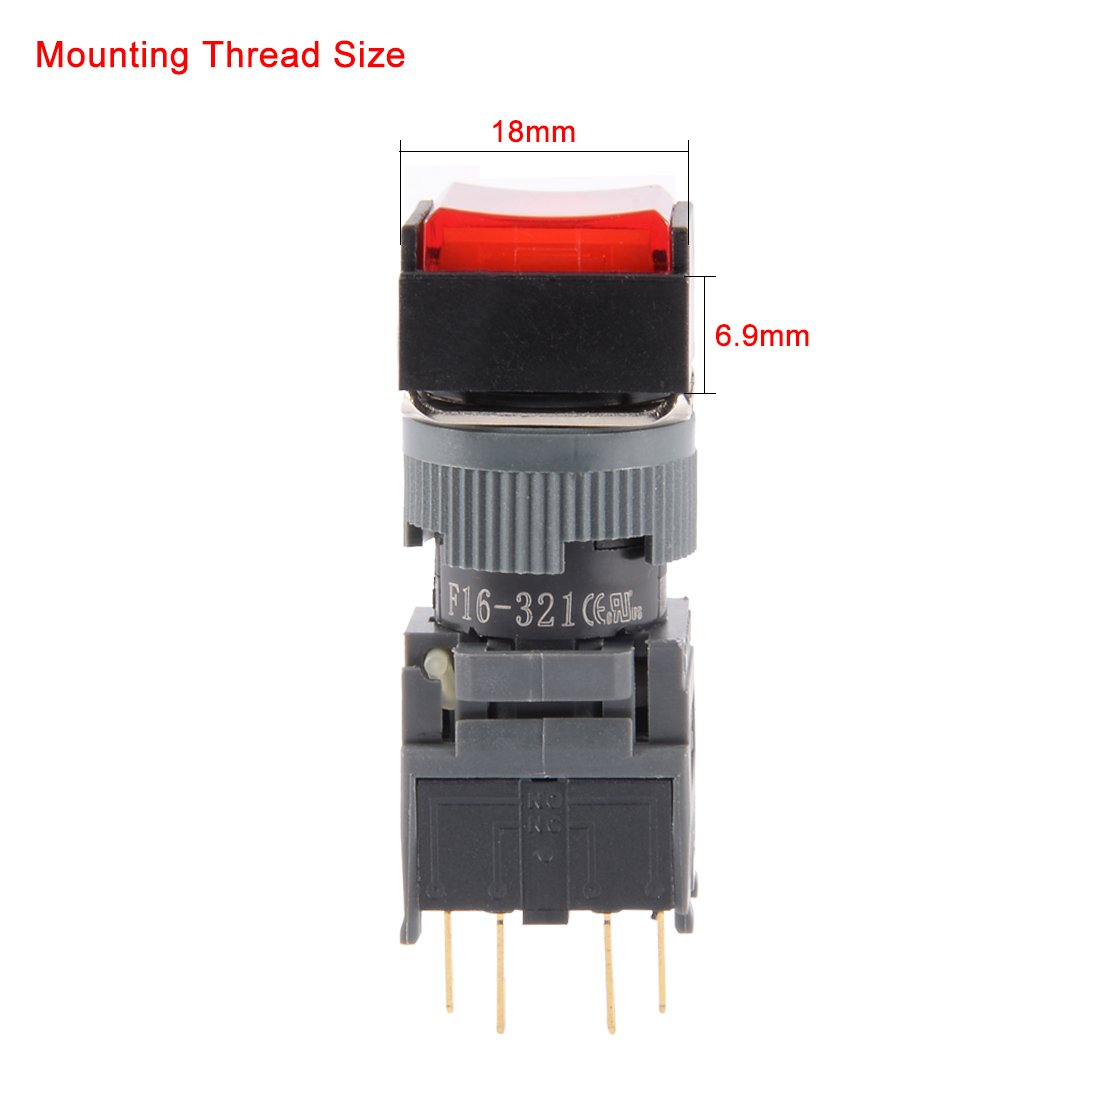 Uxcell A14101000ux0766 Ds228 Spst Latching Pushbutton Details About Push Button Switch 3a 250v Off On 1 Circuit 10 Piece Ac 125v 3 Amp 15 12 Mm Industrial Scientific